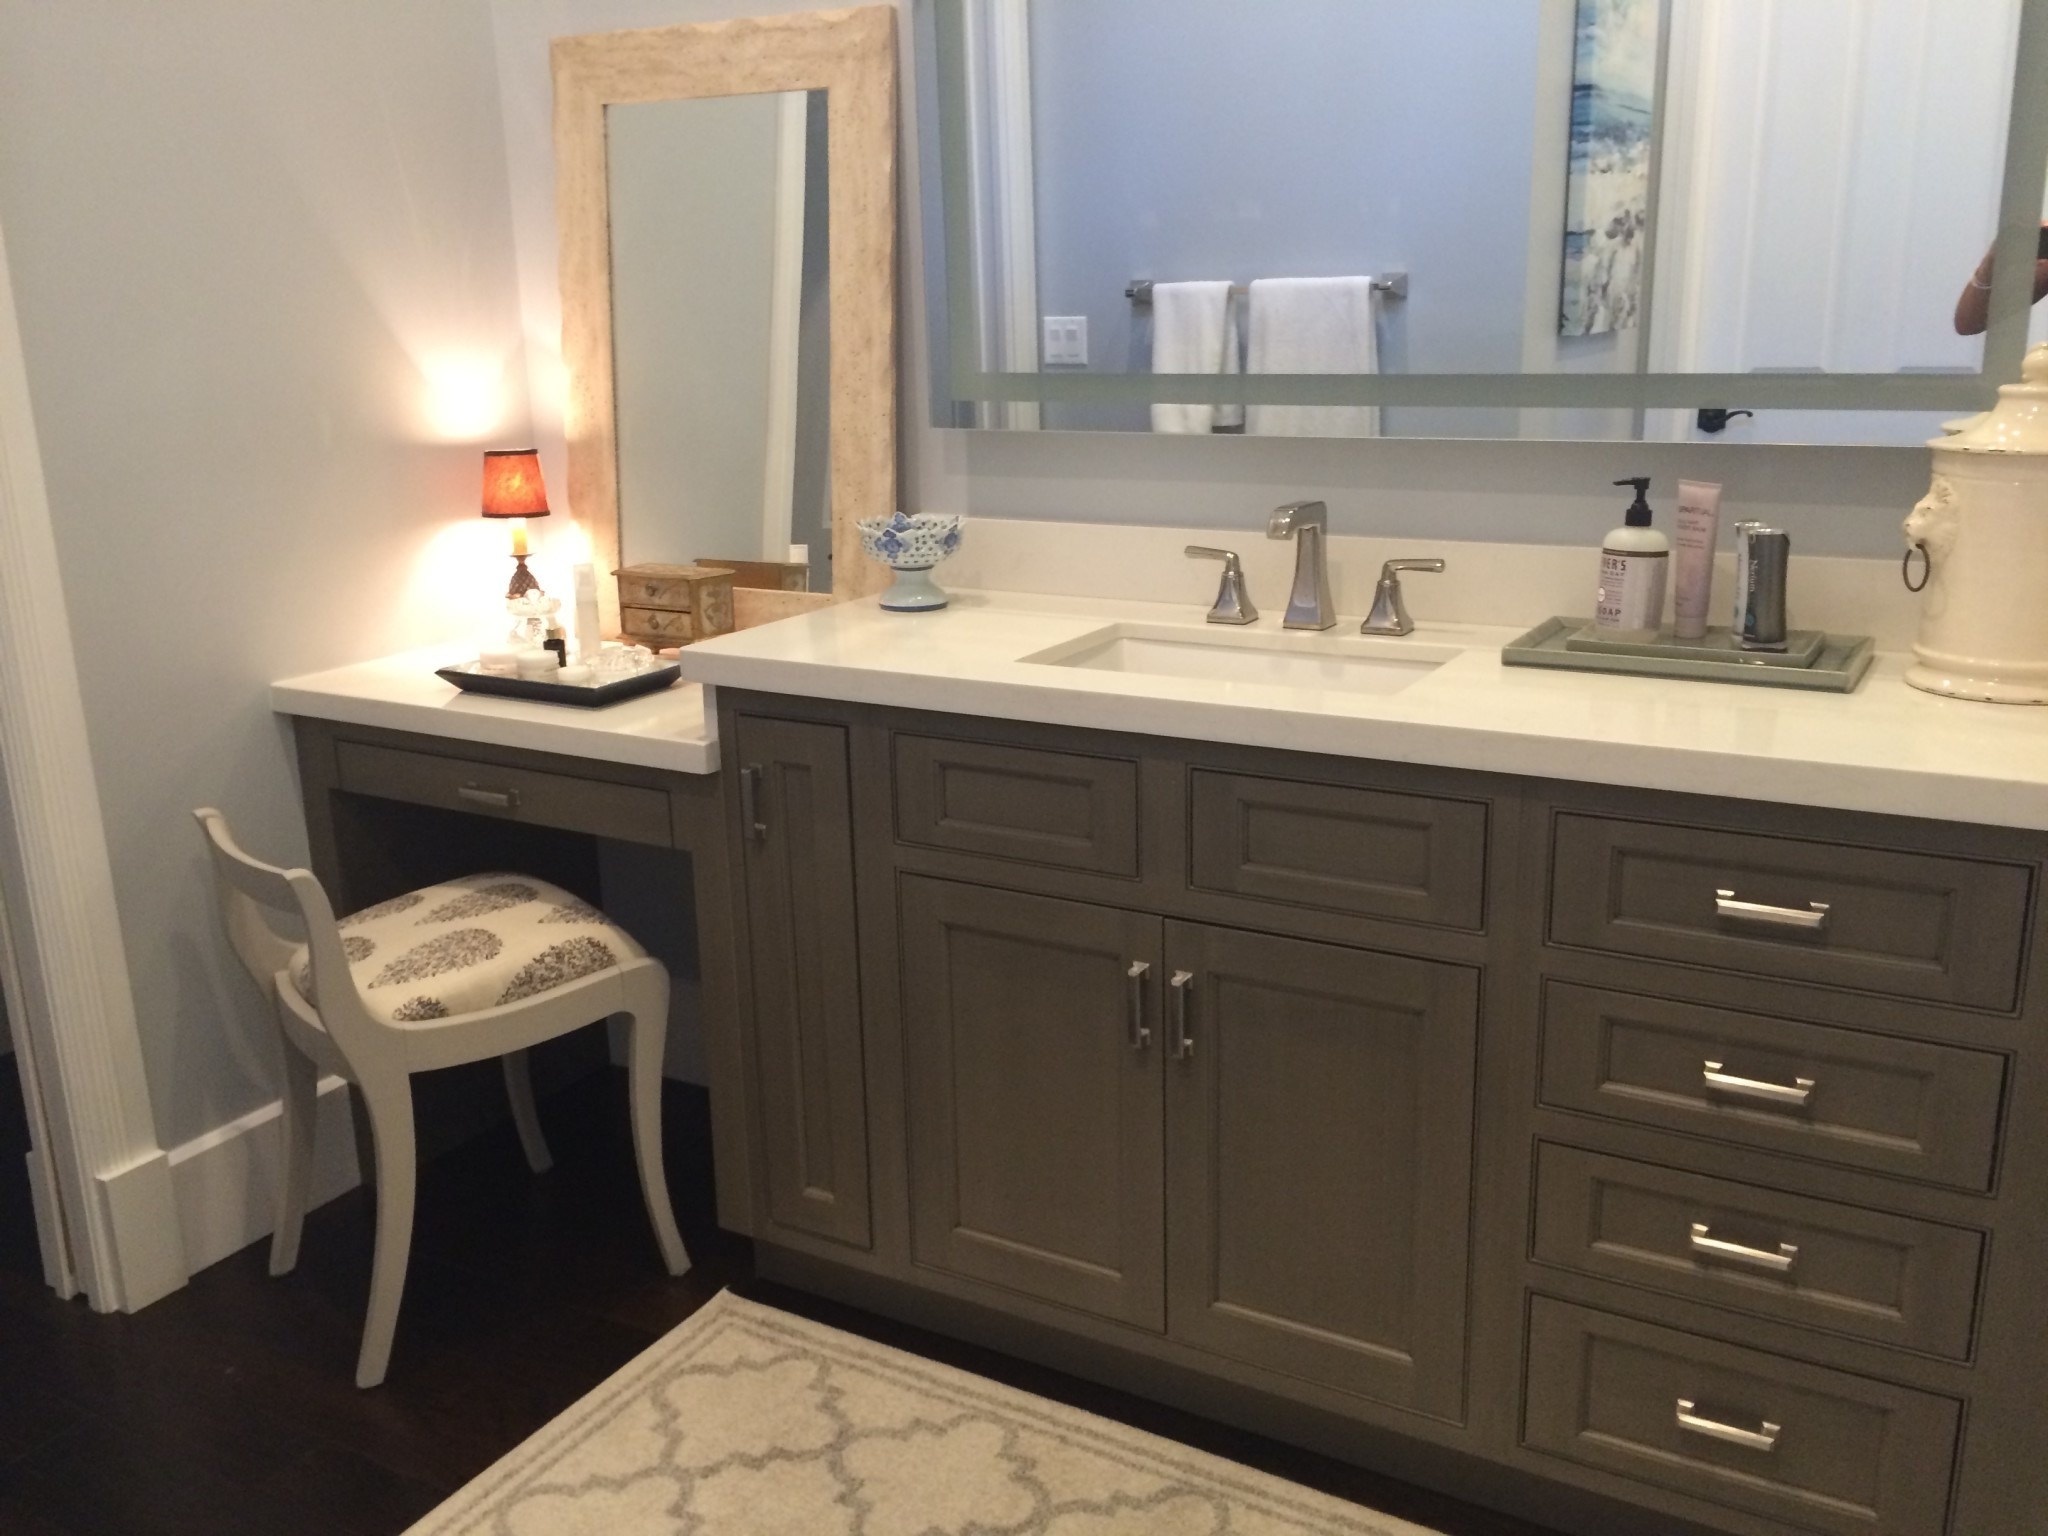 Bathroom vanities painted original gray bathroom vanities painted minimalist Bathroom cabinets gray